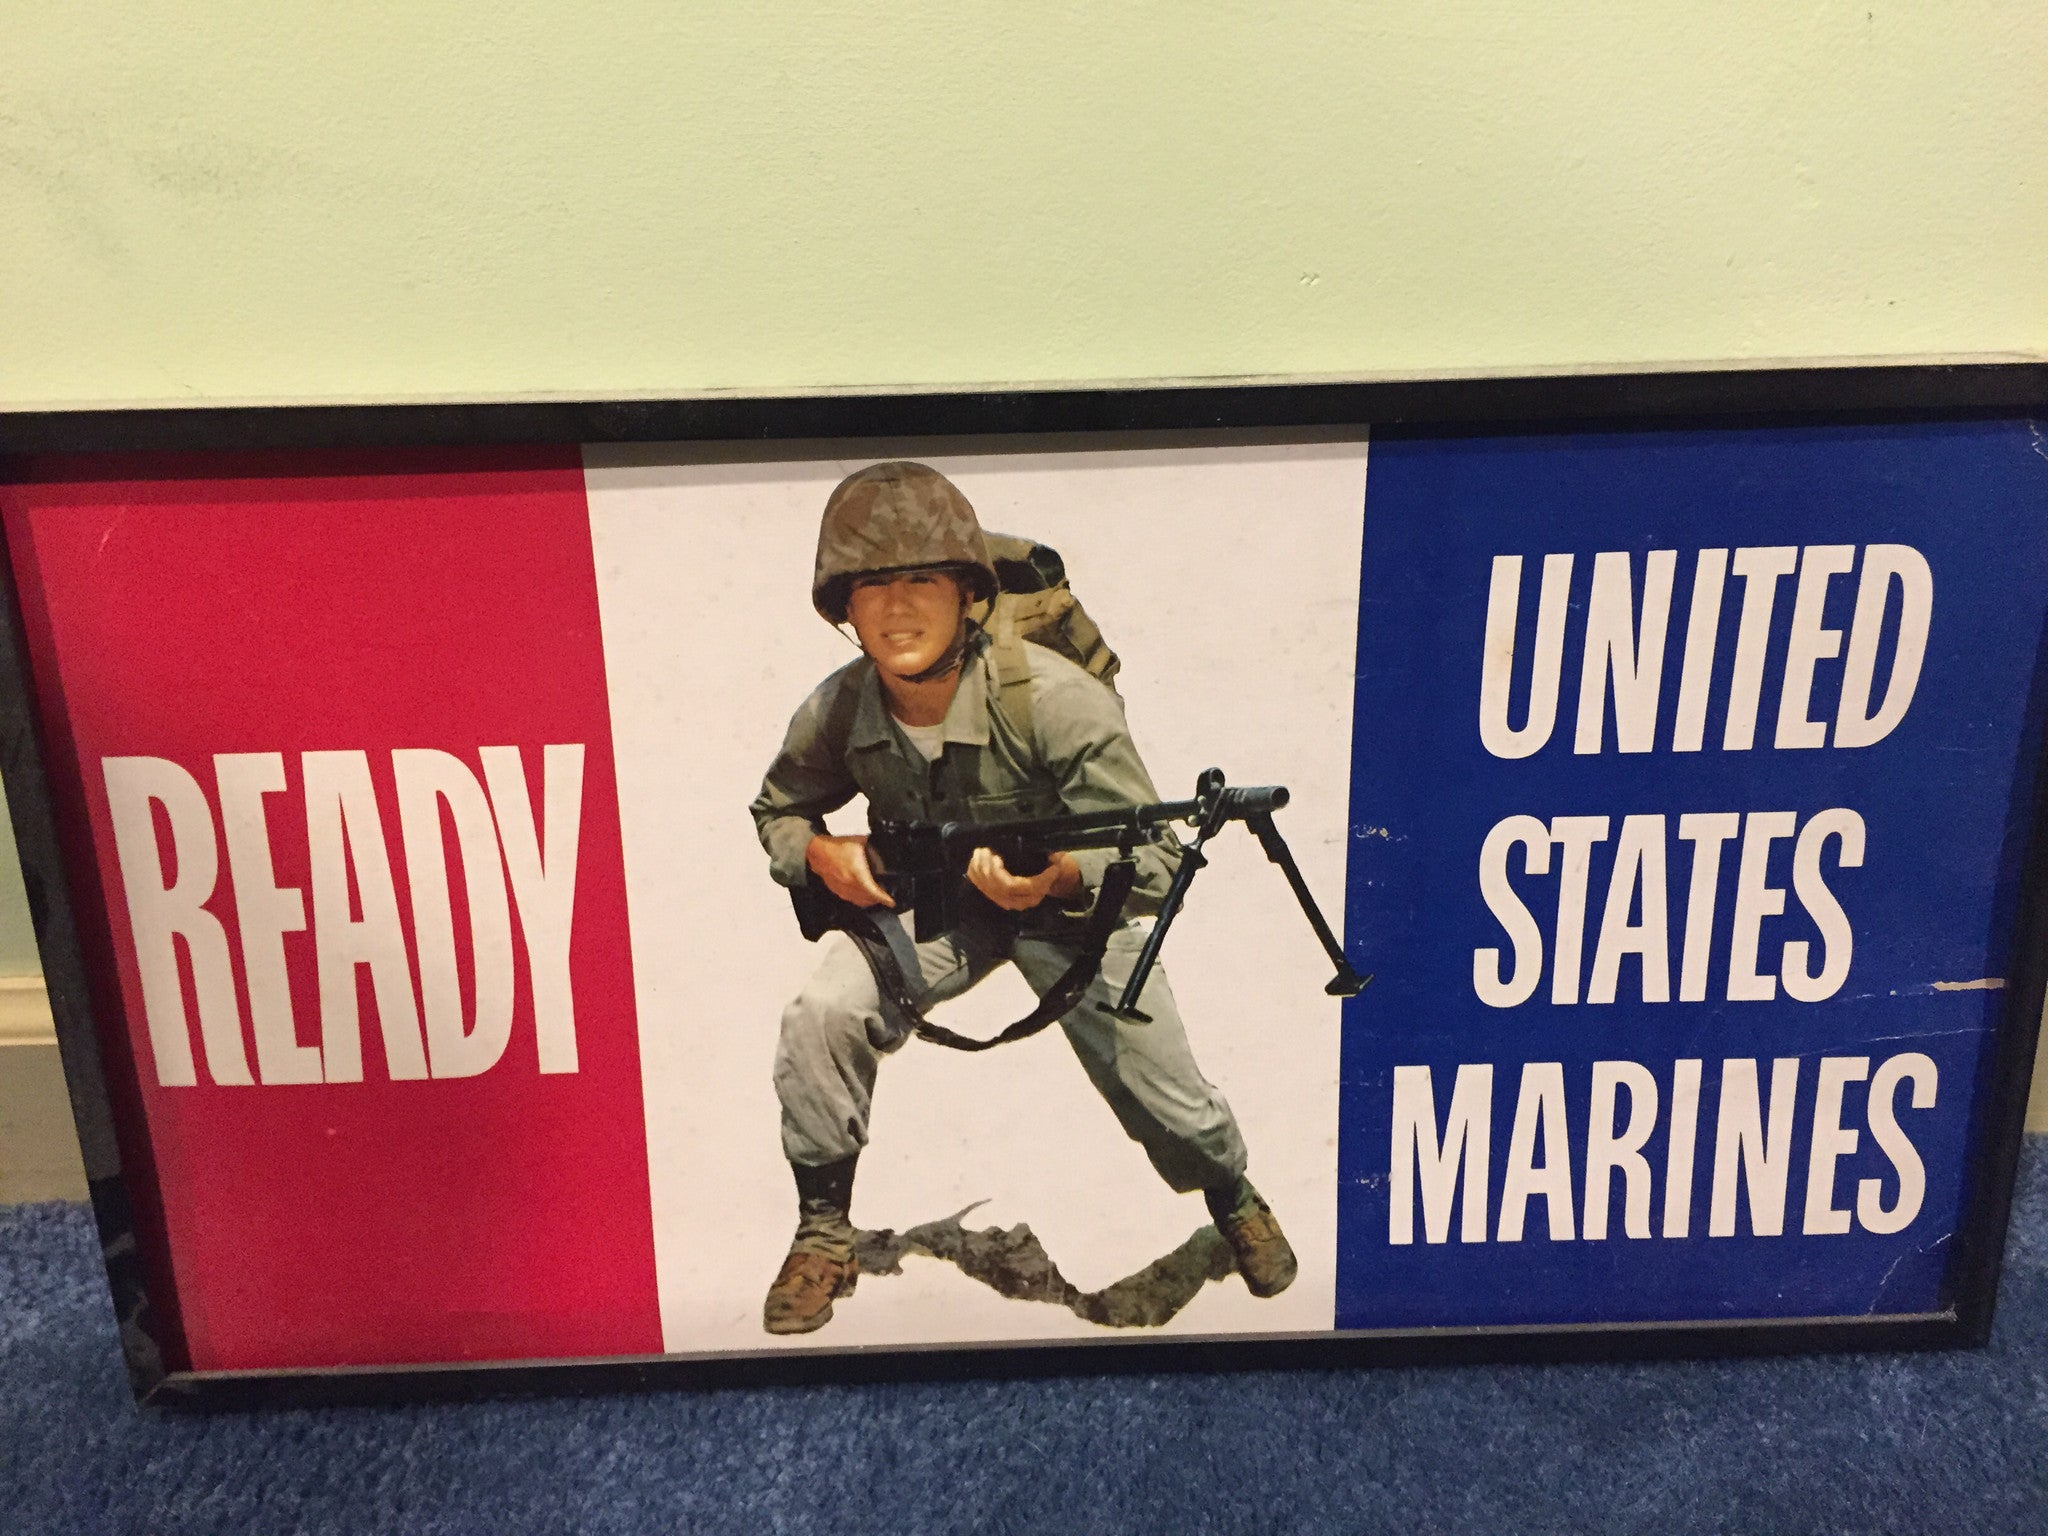 Ready USMC recruitment poster